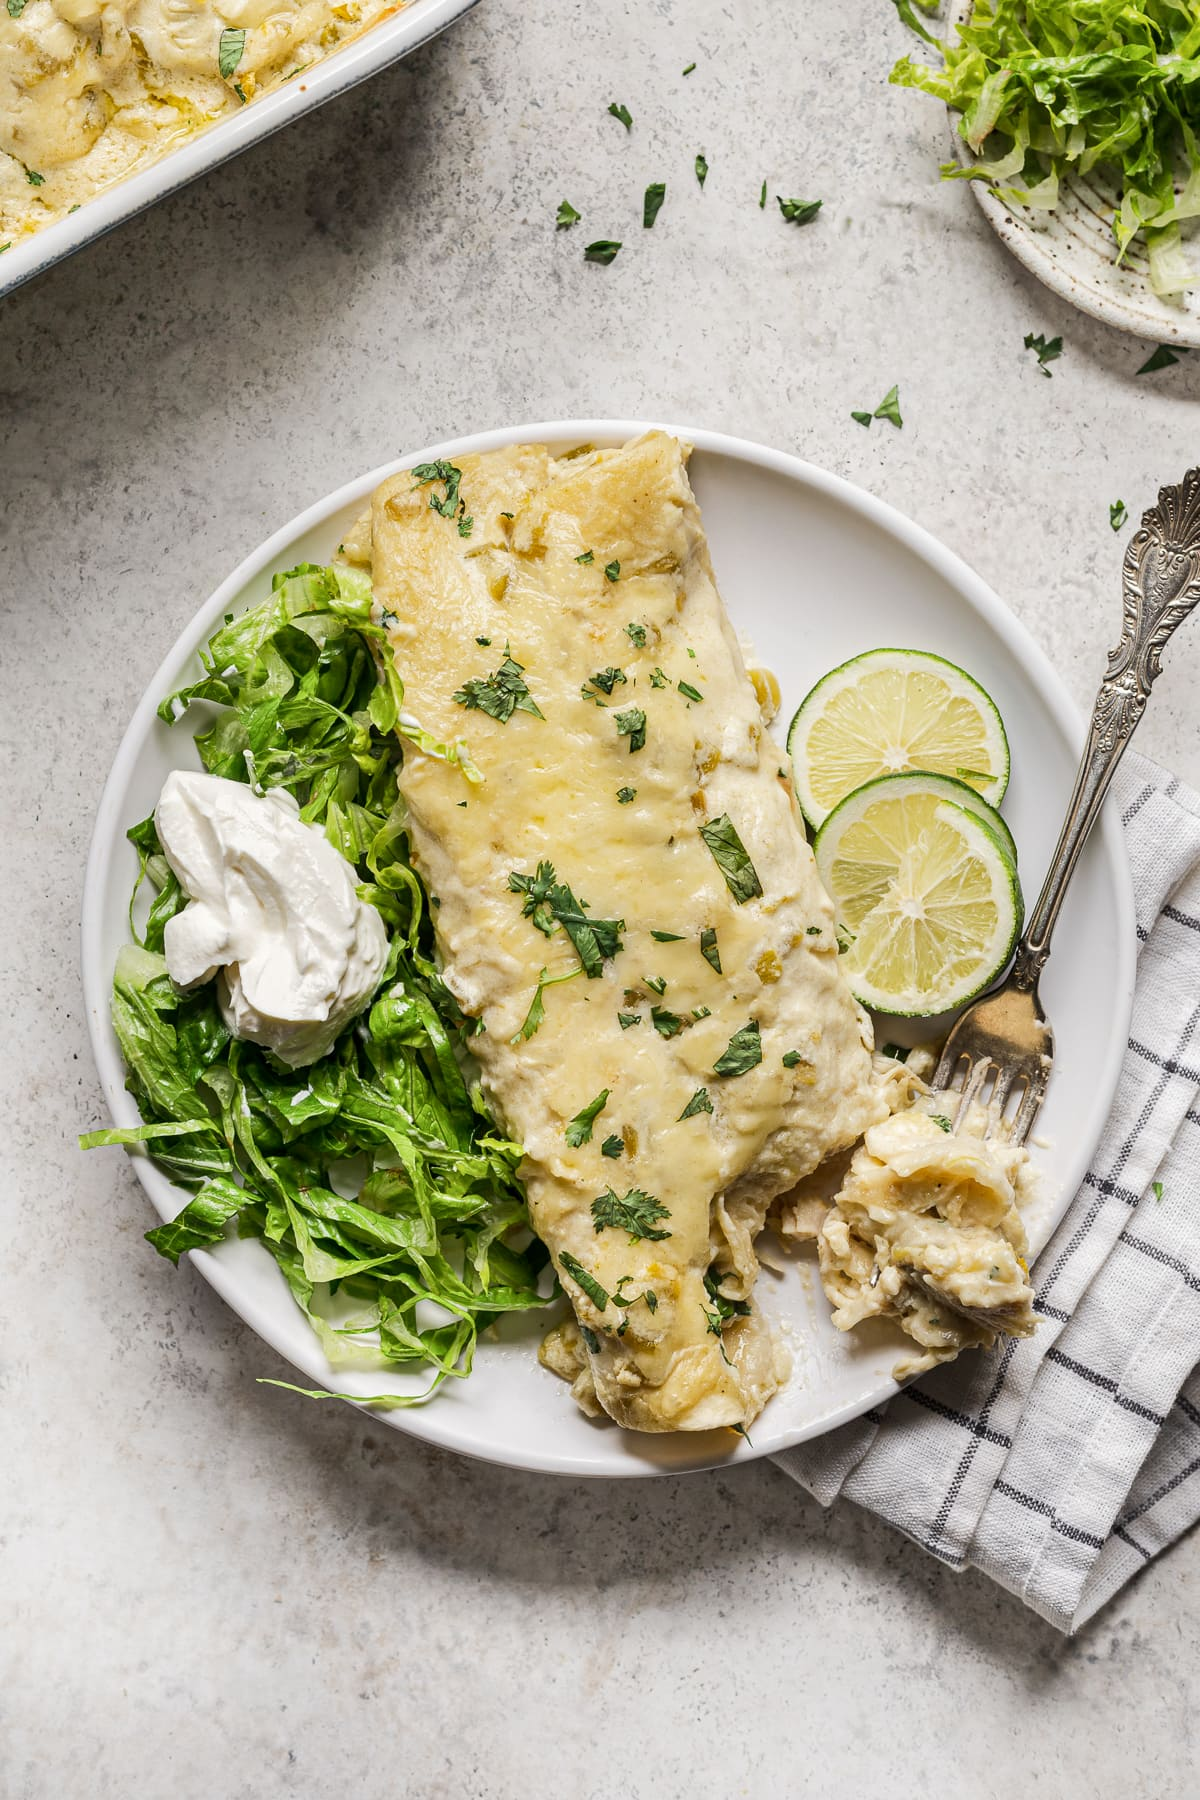 White Chicken Enchilada on a plate with shredded lettuce and sour cream.